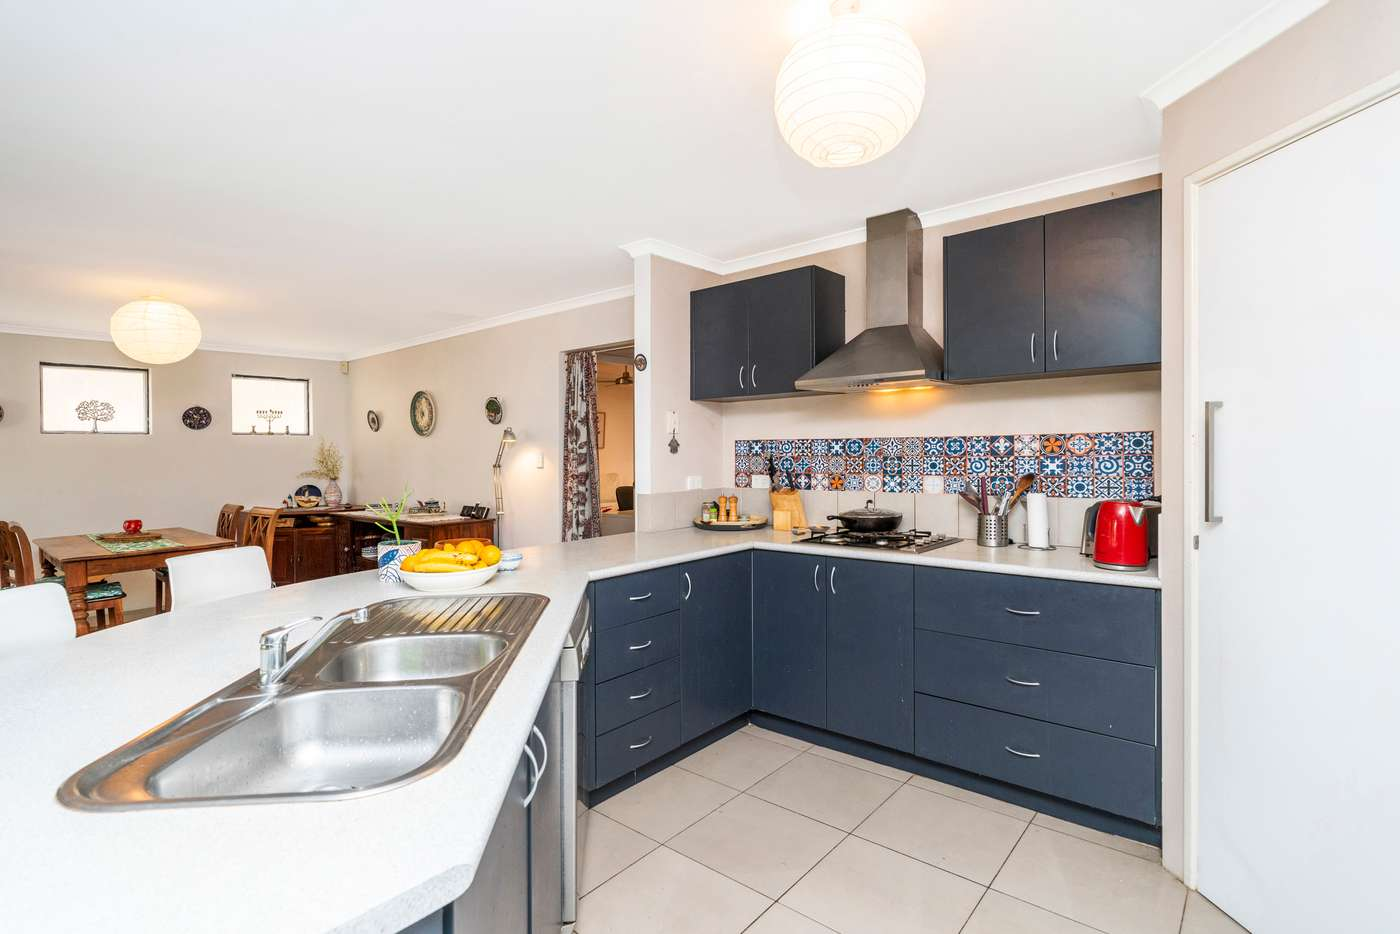 Fifth view of Homely house listing, 22A Butson Street, Hilton WA 6163